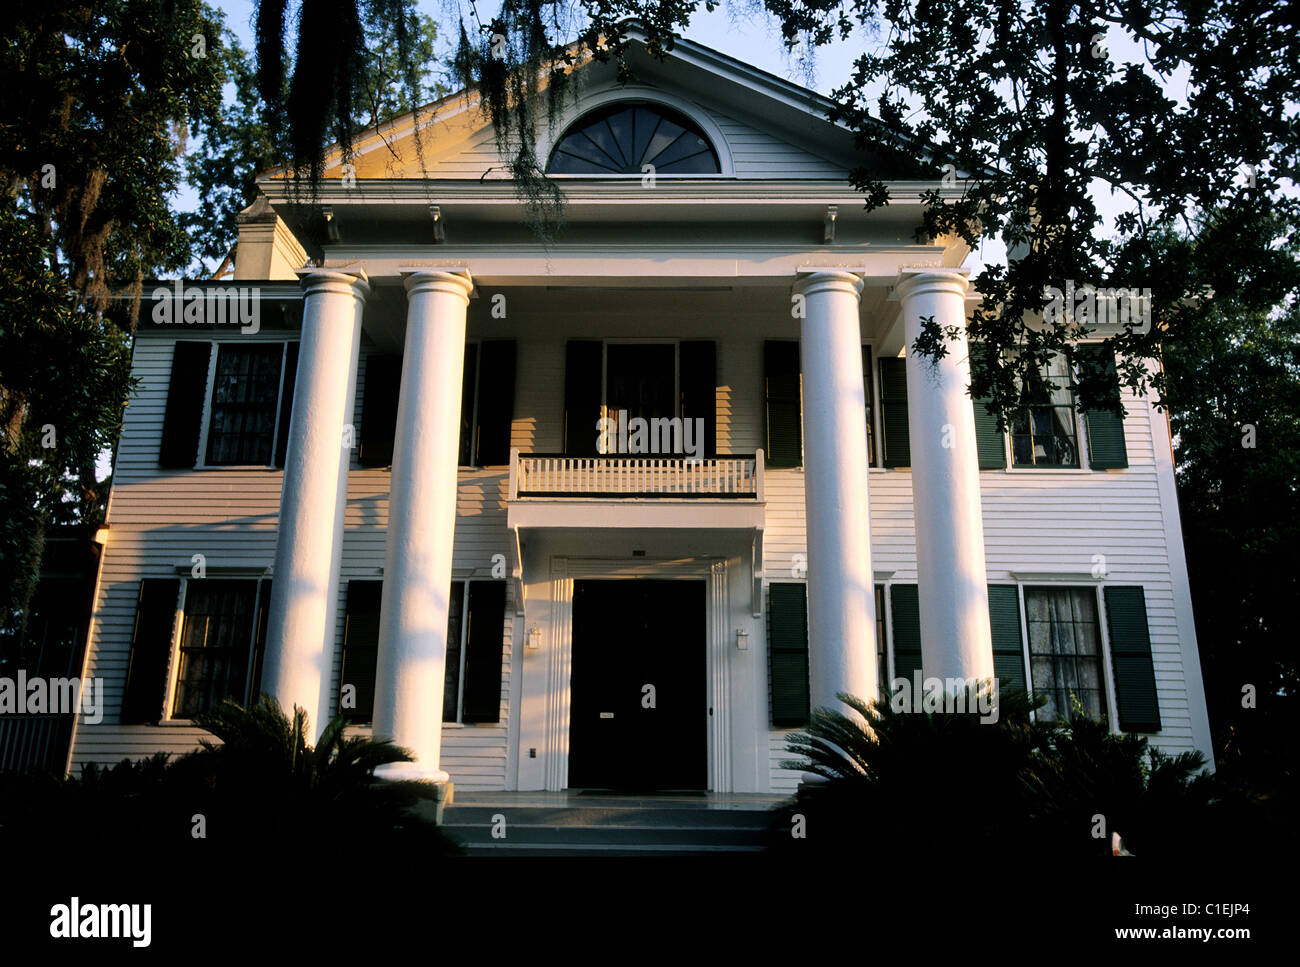 United States, Florida, Tallahassee (Capital), Knott House was built